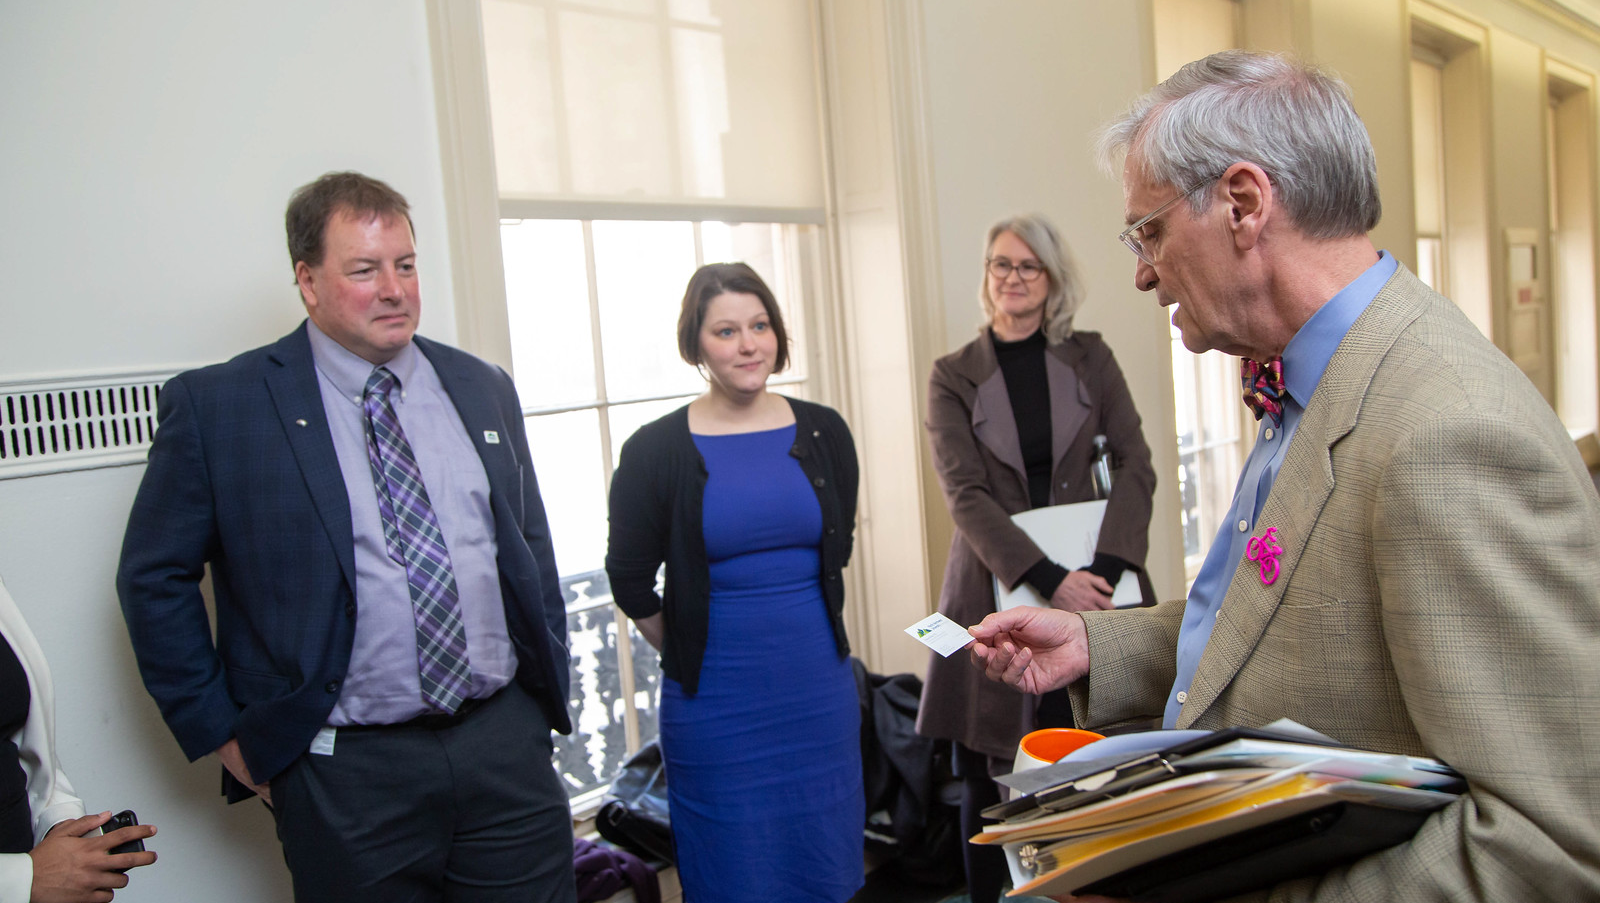 SfN members Ed Bilsky (left) and Mollie Marr (center), and SfN President Diane Lipscombe (center) meet with Rep. Earl Blumenauer (D-OR) during the 2019 Capitol Hill Day.